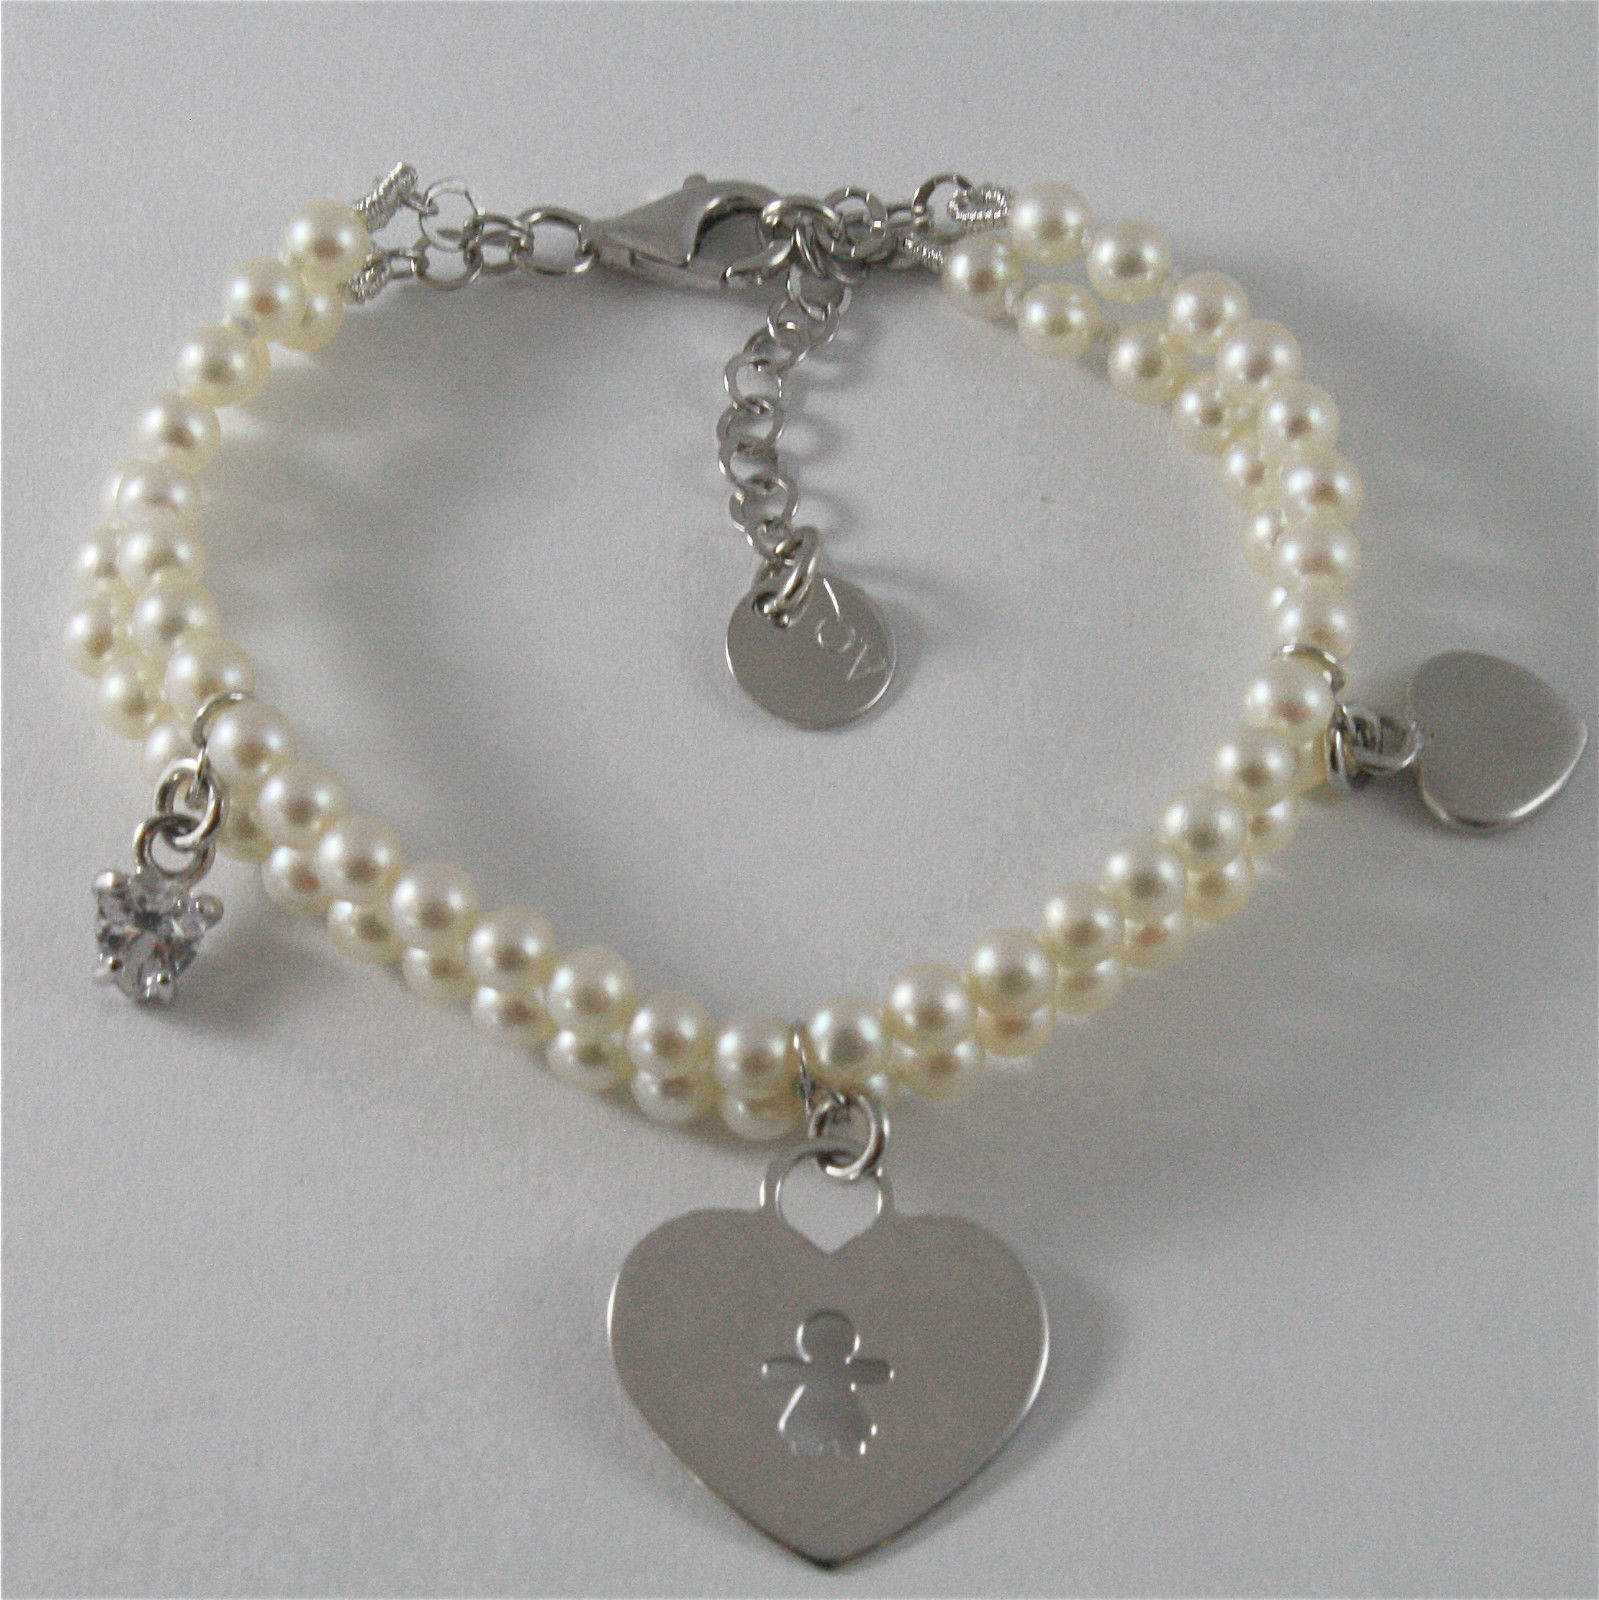 925 SILVER BRACELET WITH HEARTS AND GIRLS PENDANTS, FW WHITE PEARLS AND ZIRCONIA